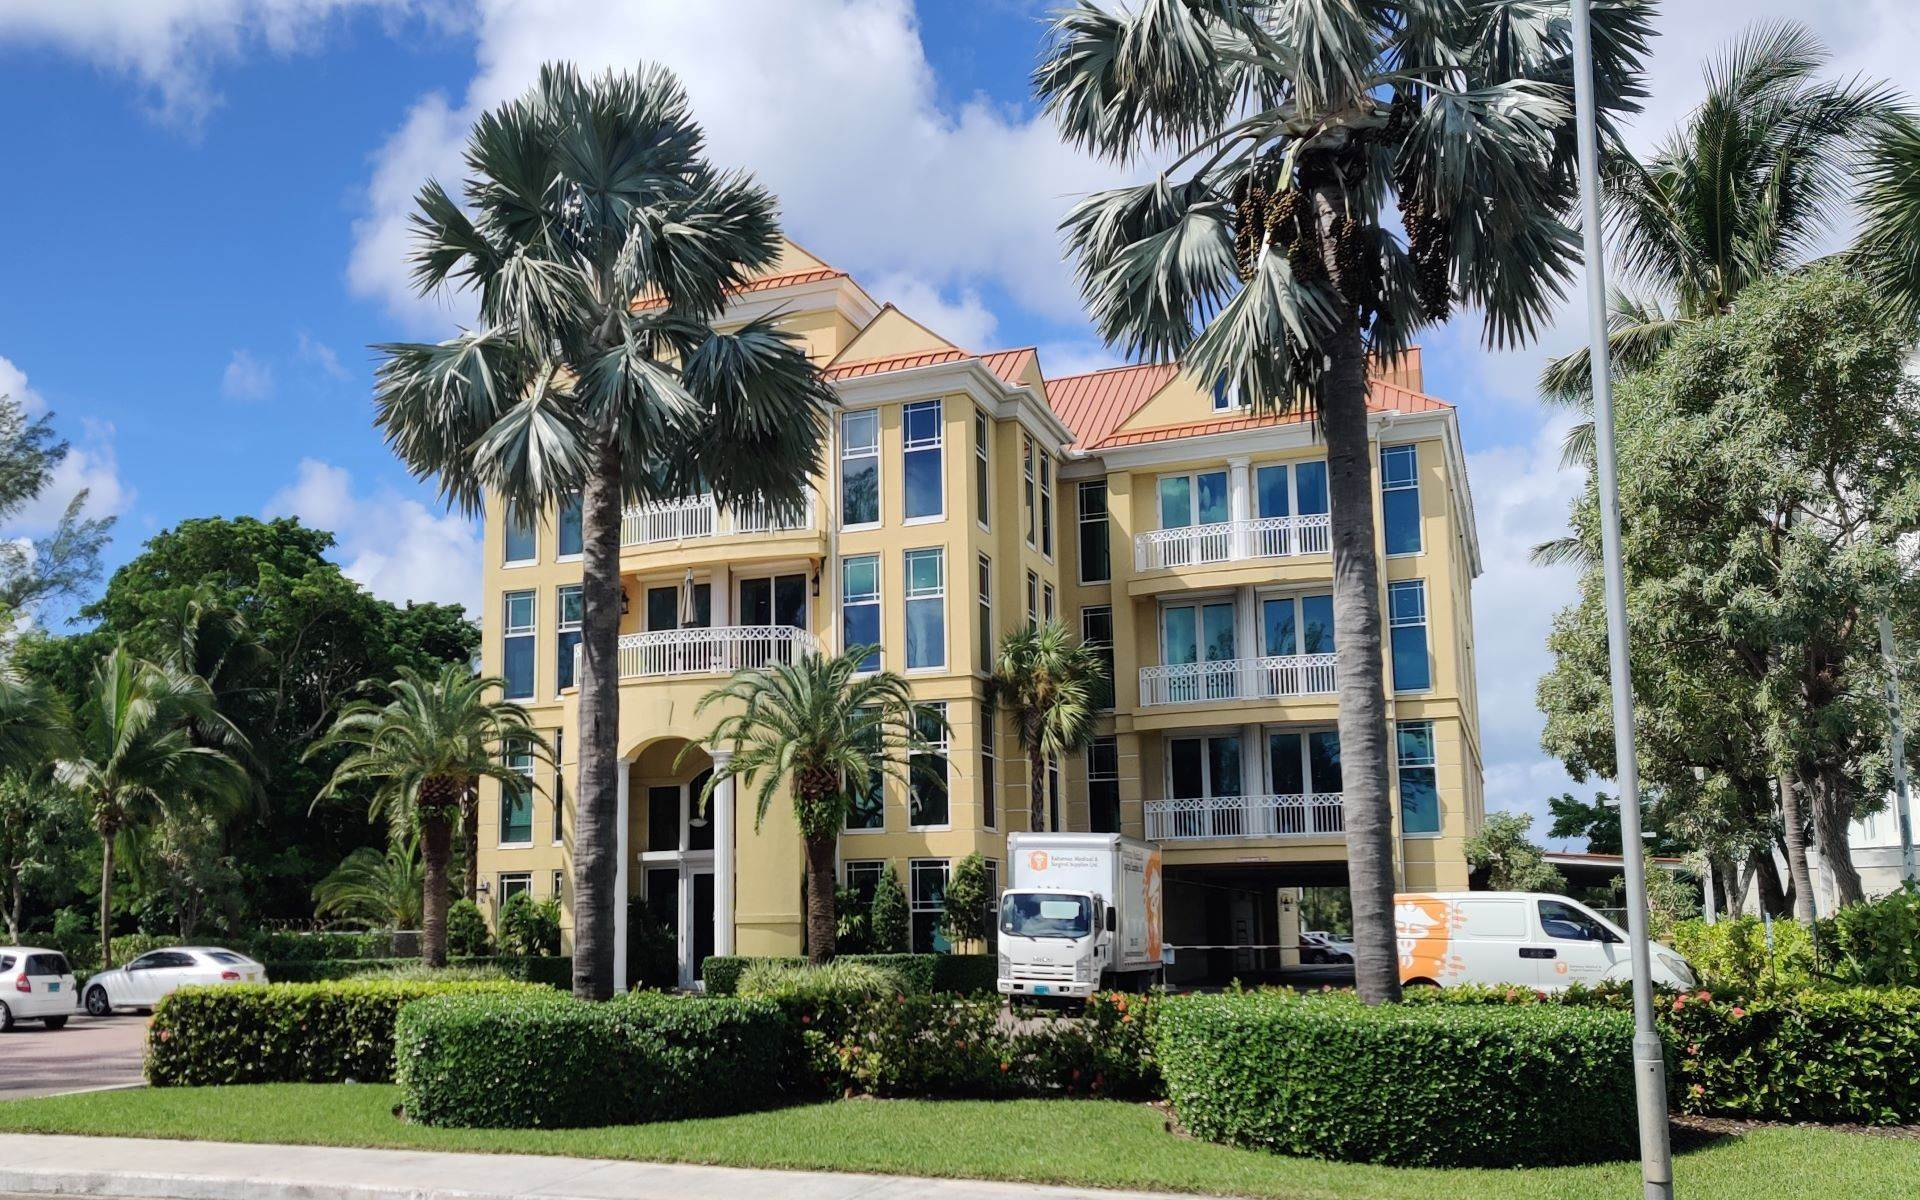 Commercial for Rent at Prime Office Space Across from Montagu Beach Nassau And Paradise Island, Bahamas